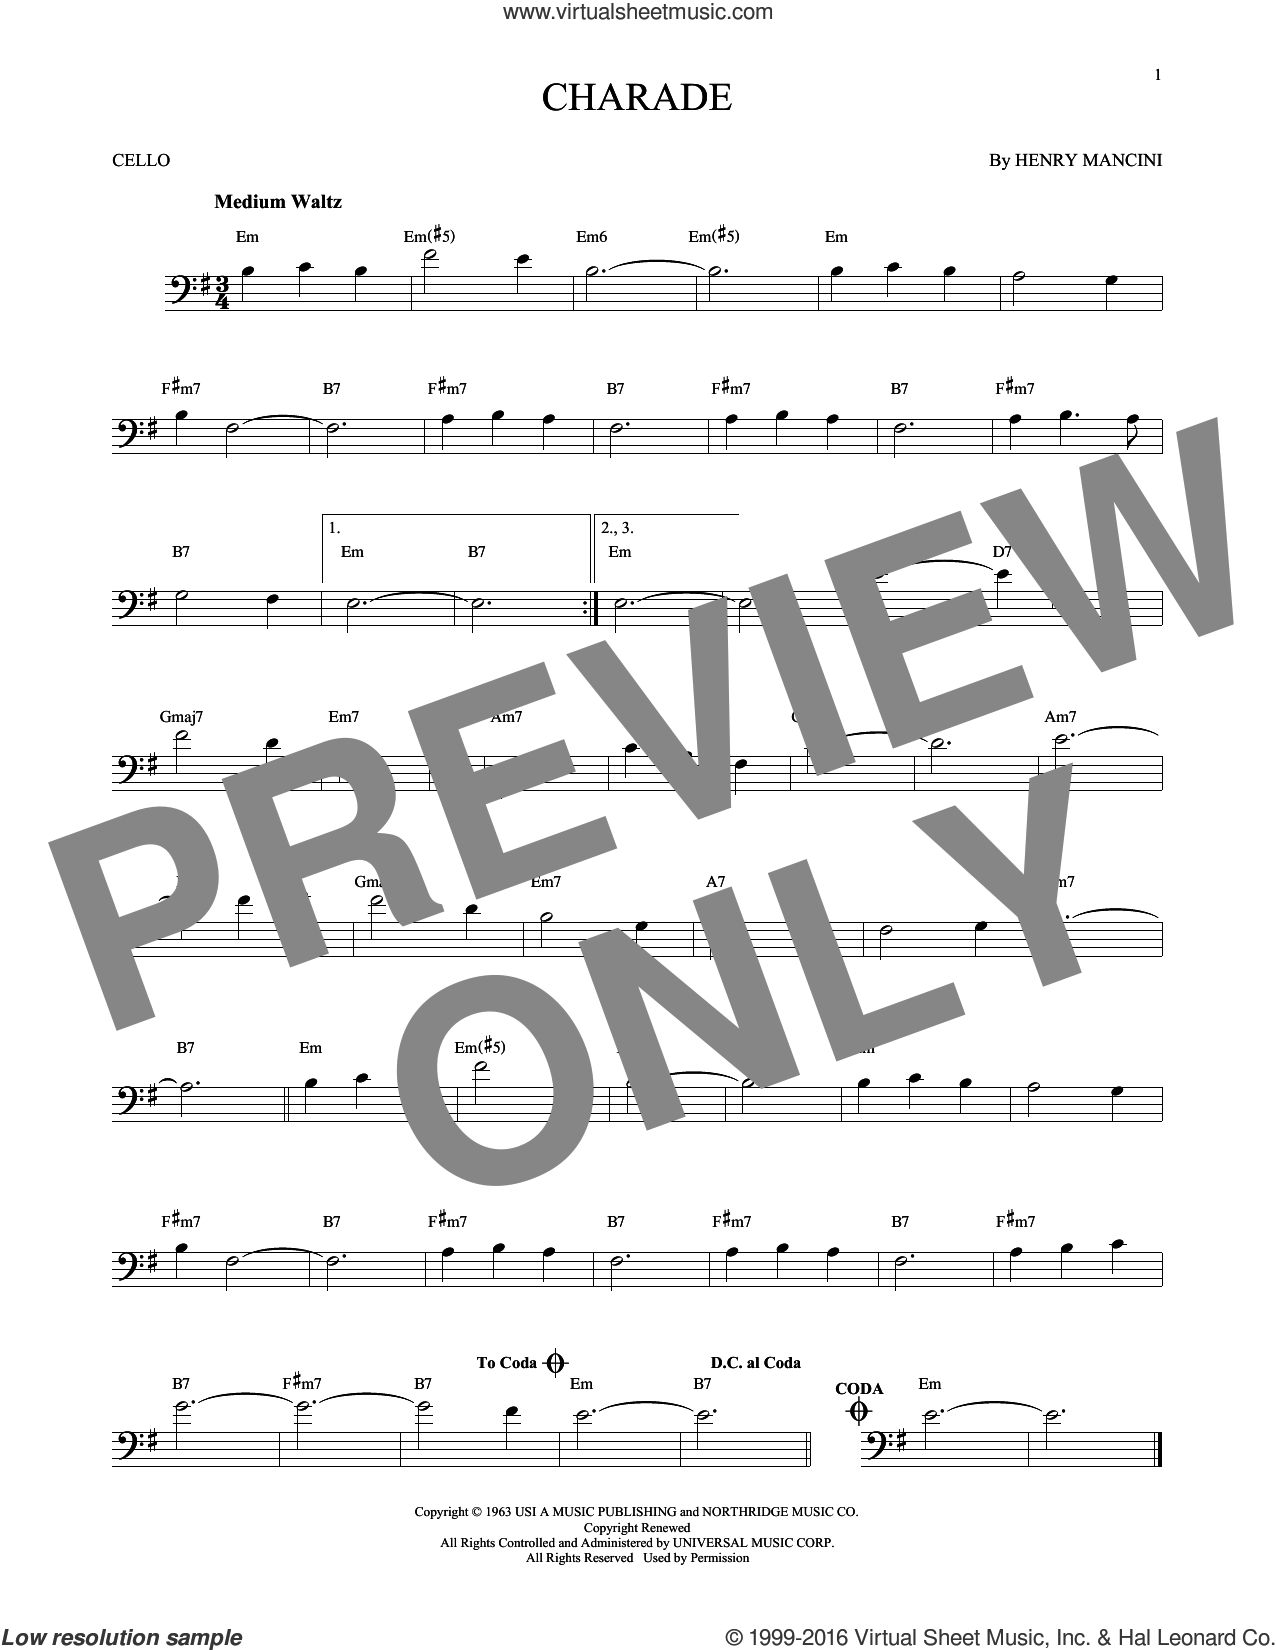 Charade sheet music for cello solo by Henry Mancini, intermediate skill level